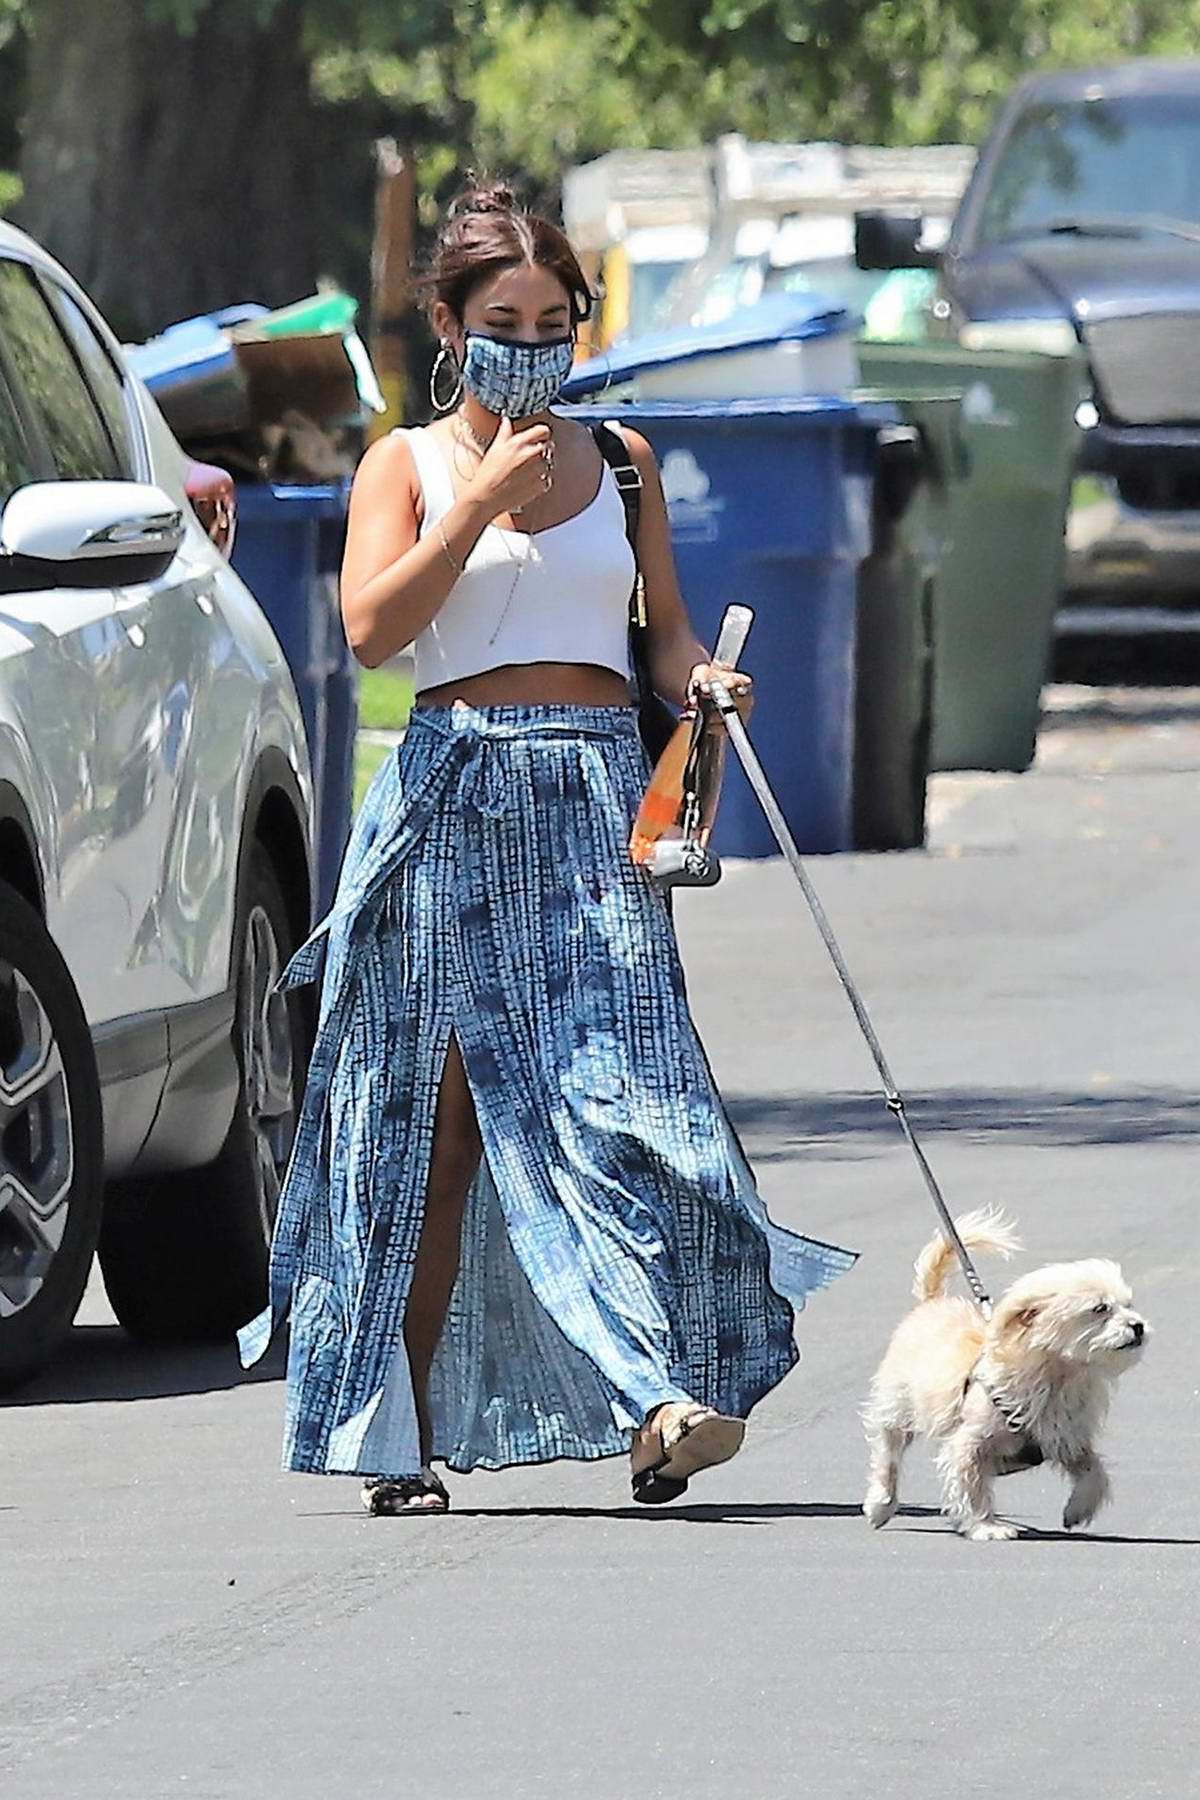 Vanessa Hudgens wears a trendy skirt and a crop top as she steps out with her dog in Los Angeles